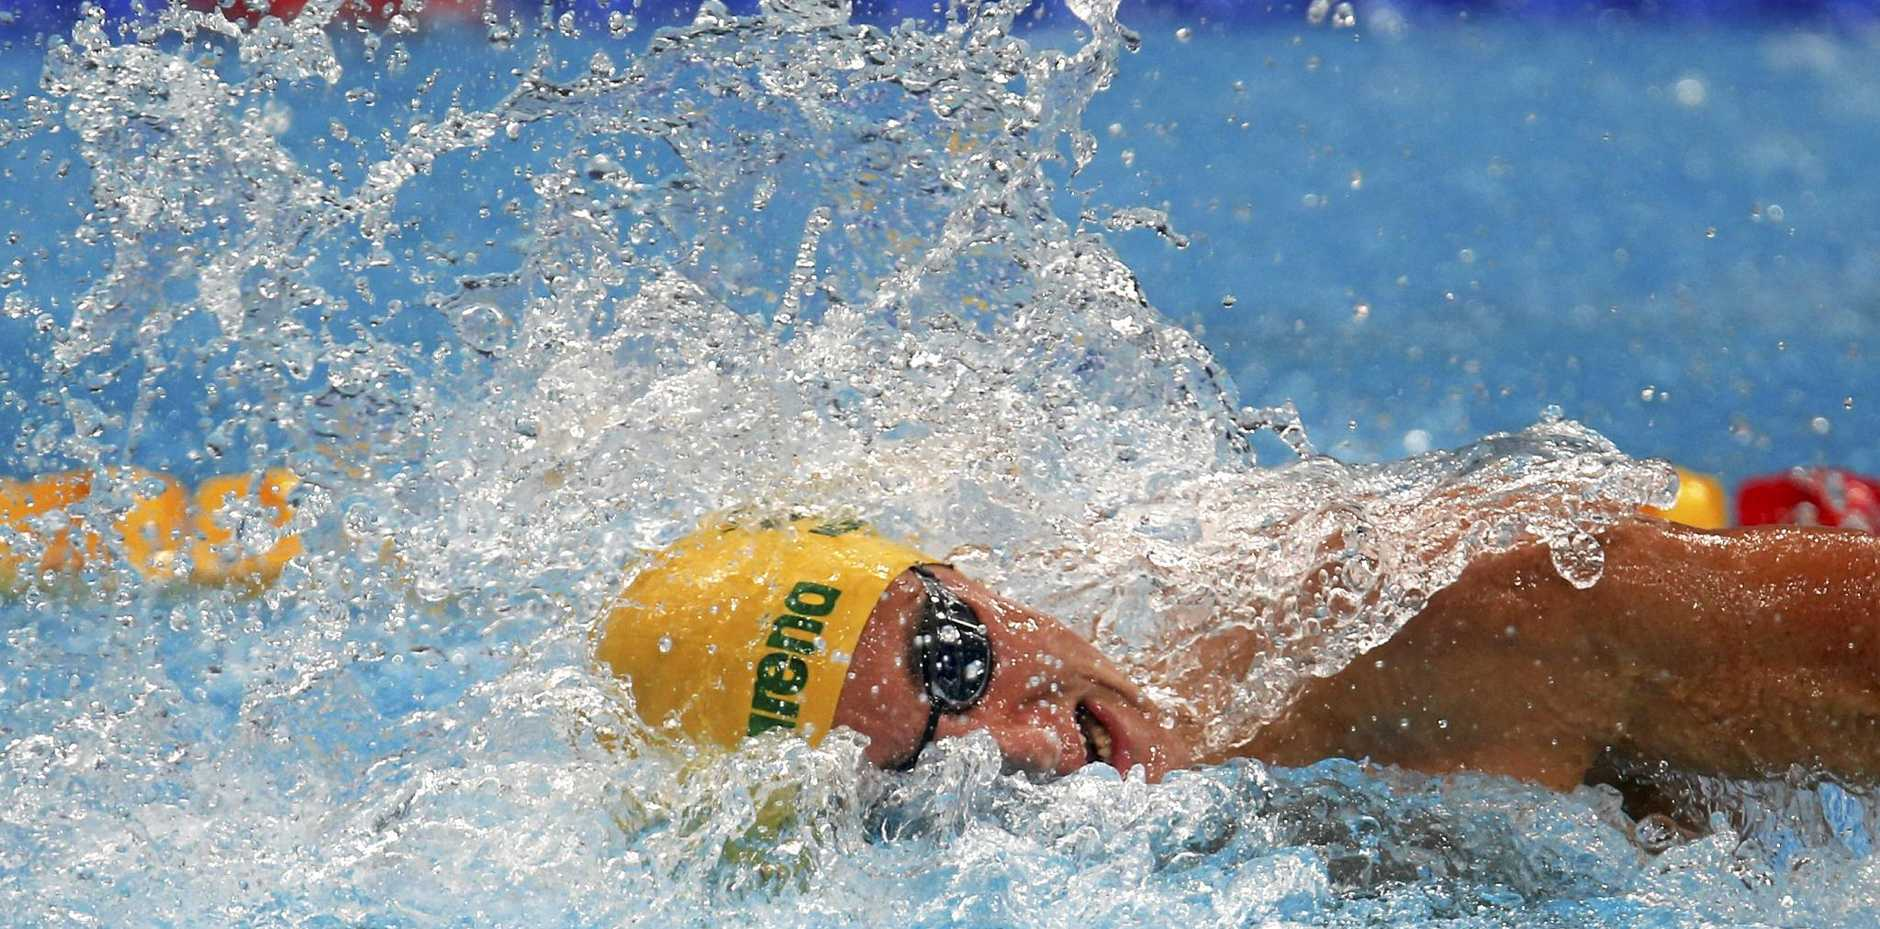 Australia's Cameron McEvoy competes in a men's 100m freestyle heat at the world championships in Budapest.